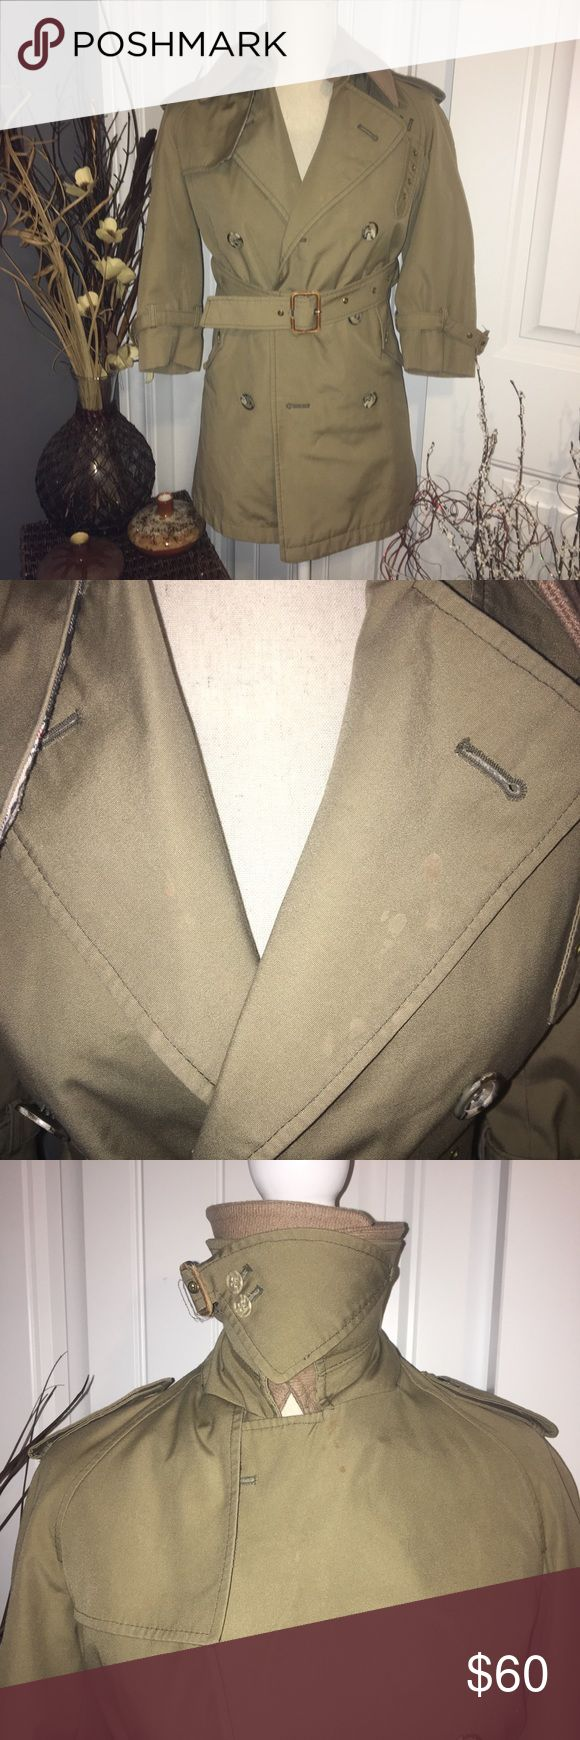 Vintage Brooks Brothers Boys Trench Coat Vintage Brooks Brothers Boys Trench Coat size 10. There are a few spots around the collar area that are likely treatable. The leather around the belt bucks has visible wear. There is a removable collar and lining inside the jacket. All buttons are intact. The quality of this jacket is very durable. Brooks Brothers Jackets & Coats